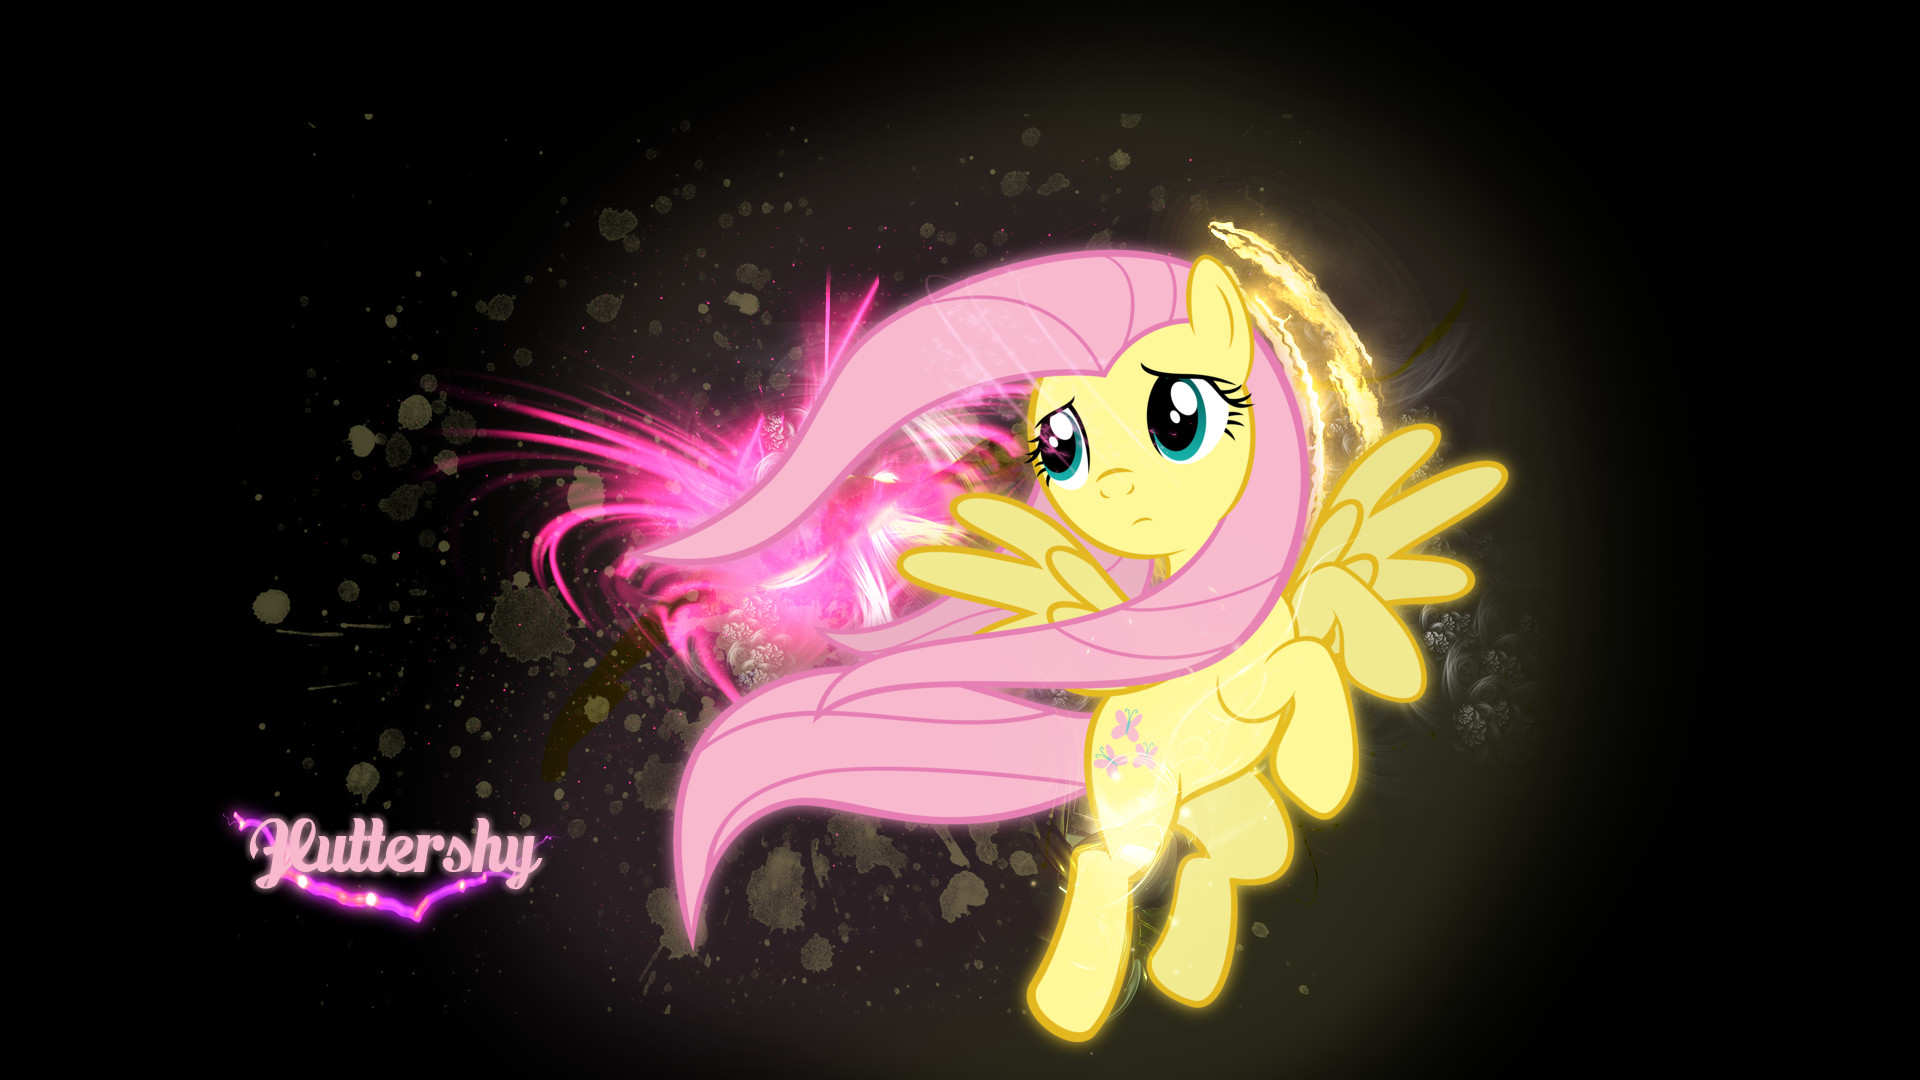 1920x1080 Fluttershy - My Little Pony HD Wallpaper